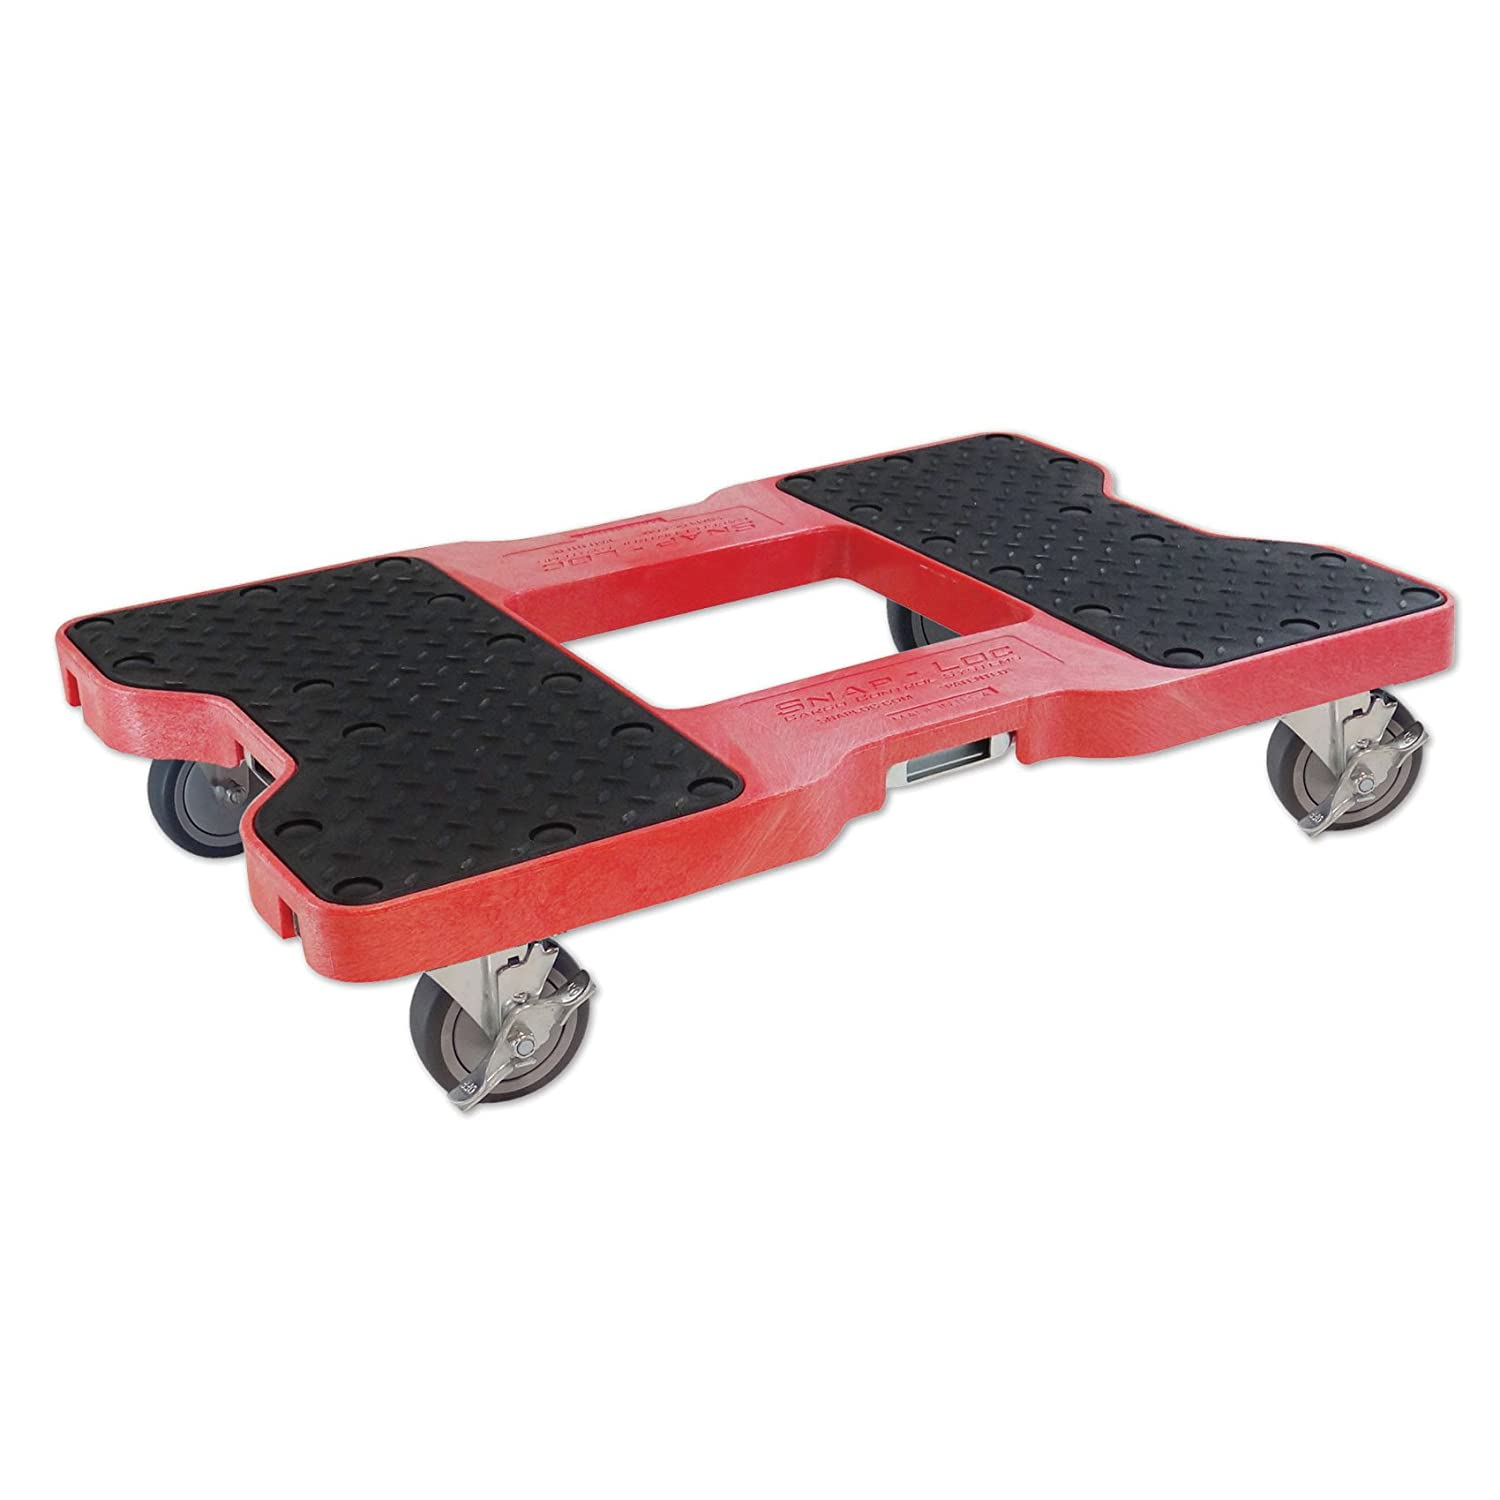 SNAP-LOC DOLLY RED (USA!) with 1,500 lb. capacity, steel frame, strap option, 4 inch casters Snap-Loc Cargo SL1500D4R